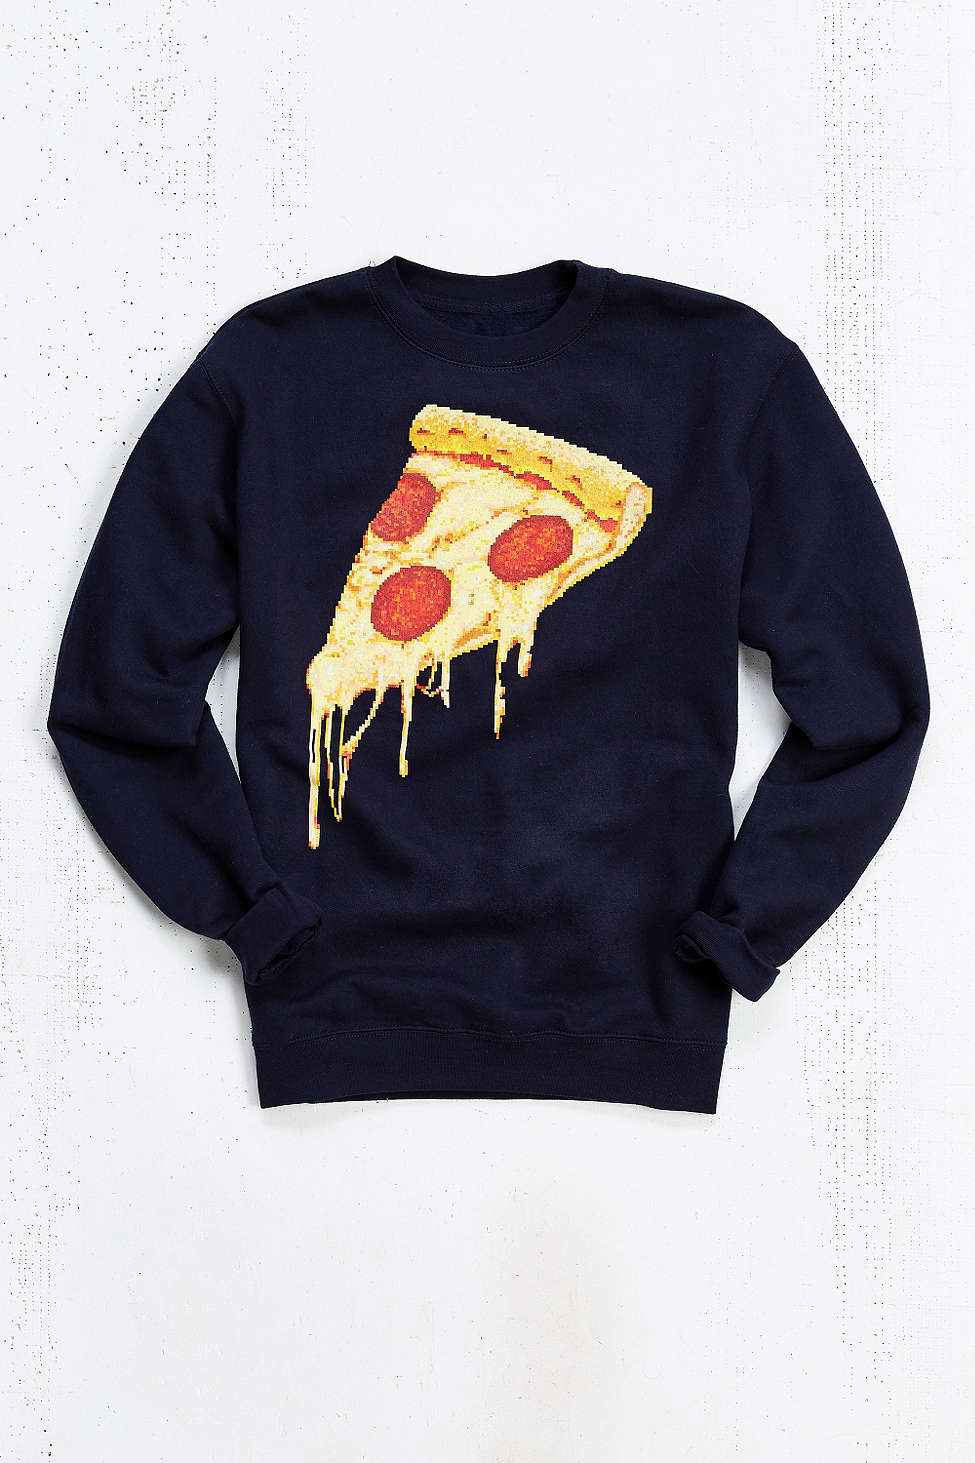 Lyst Urban Outfitters Pizza Pixel Crew Neck Sweatshirt